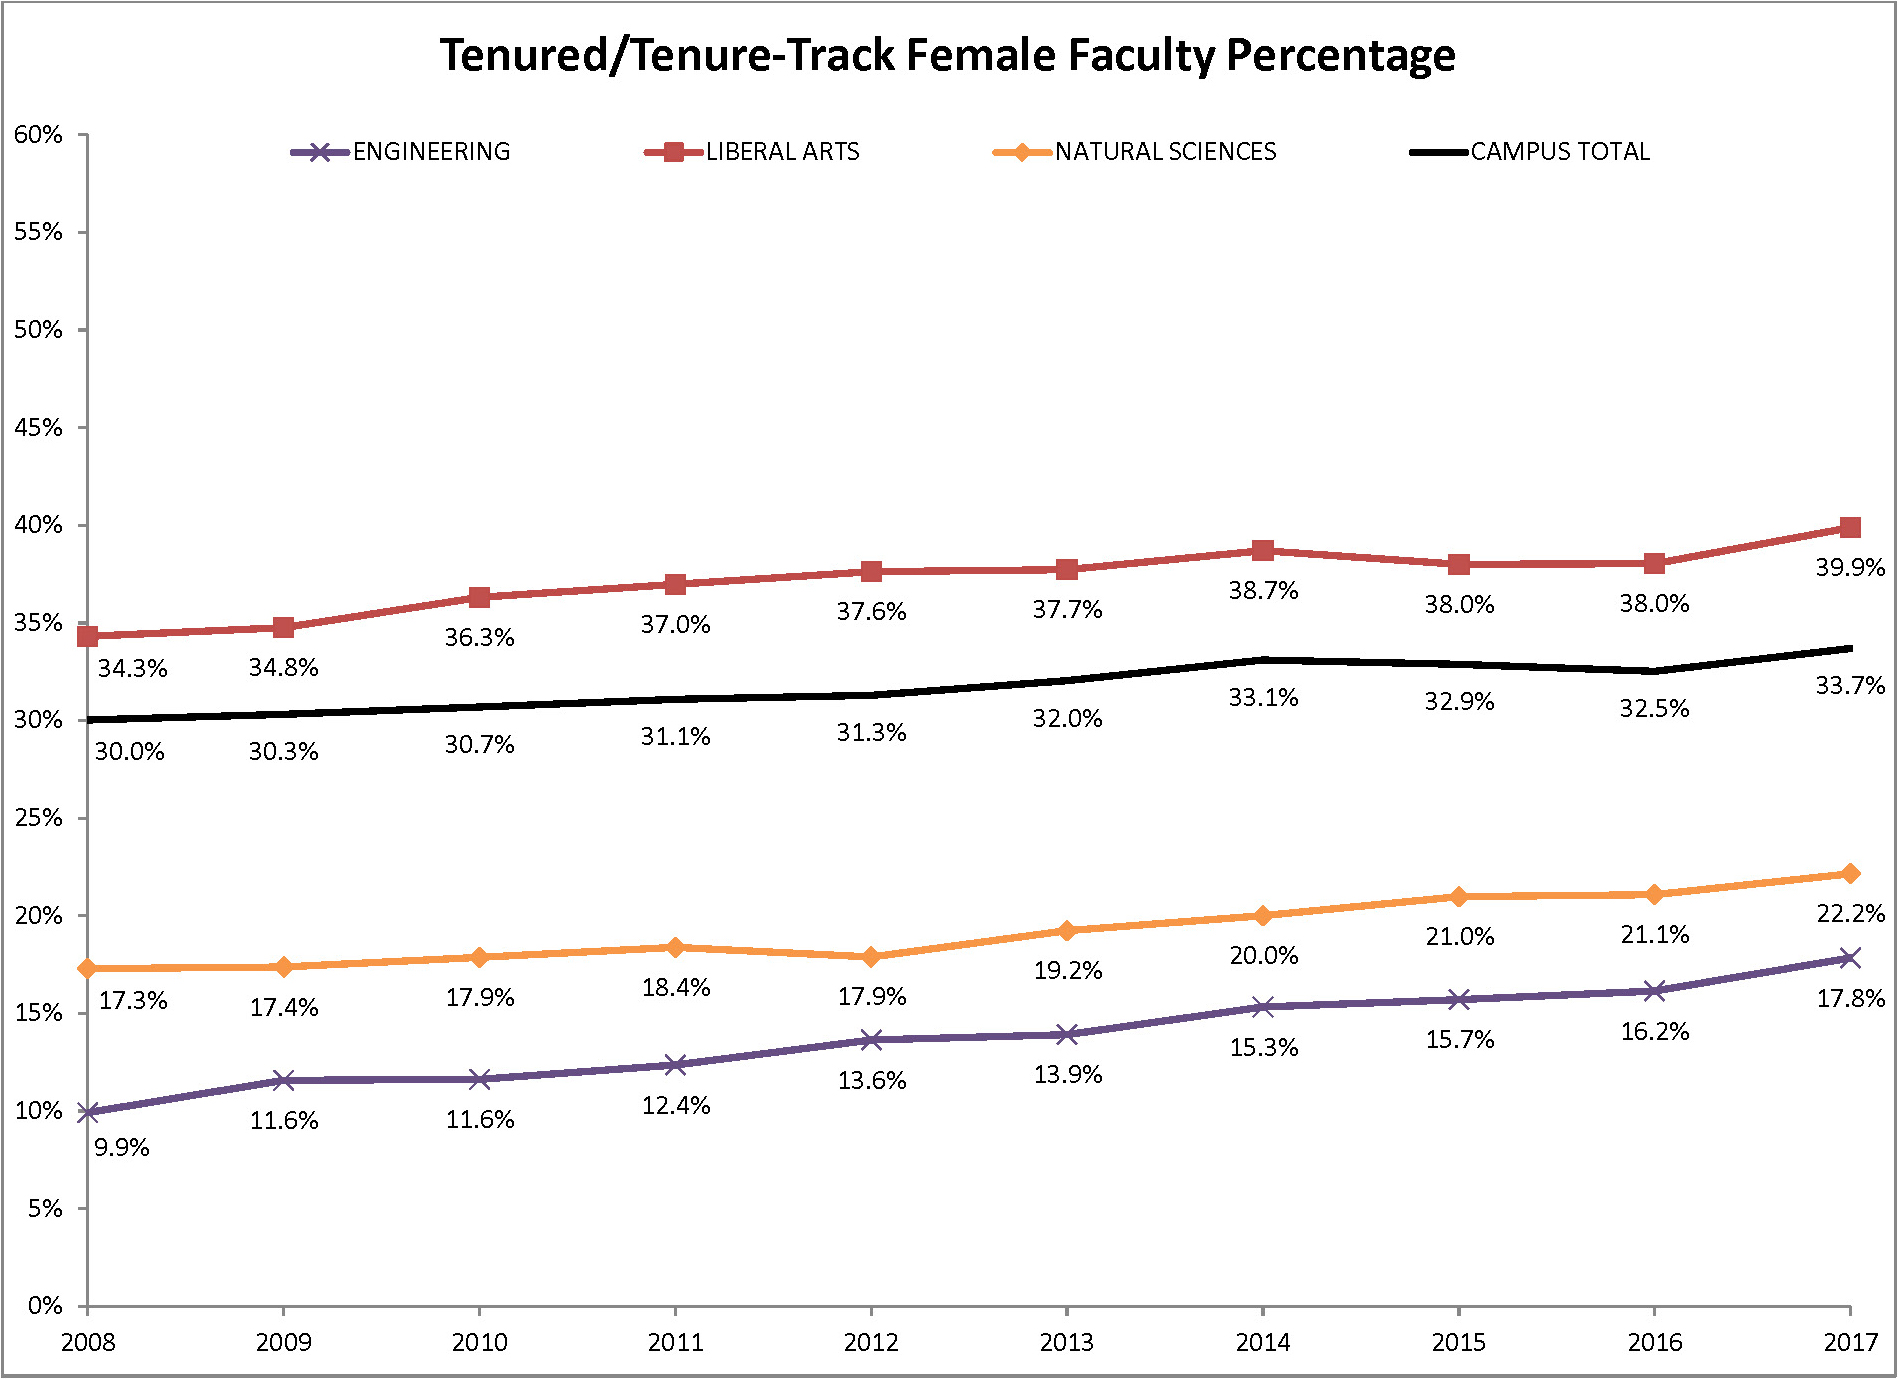 Line graph for tenured/tenure-track female faculty percentage